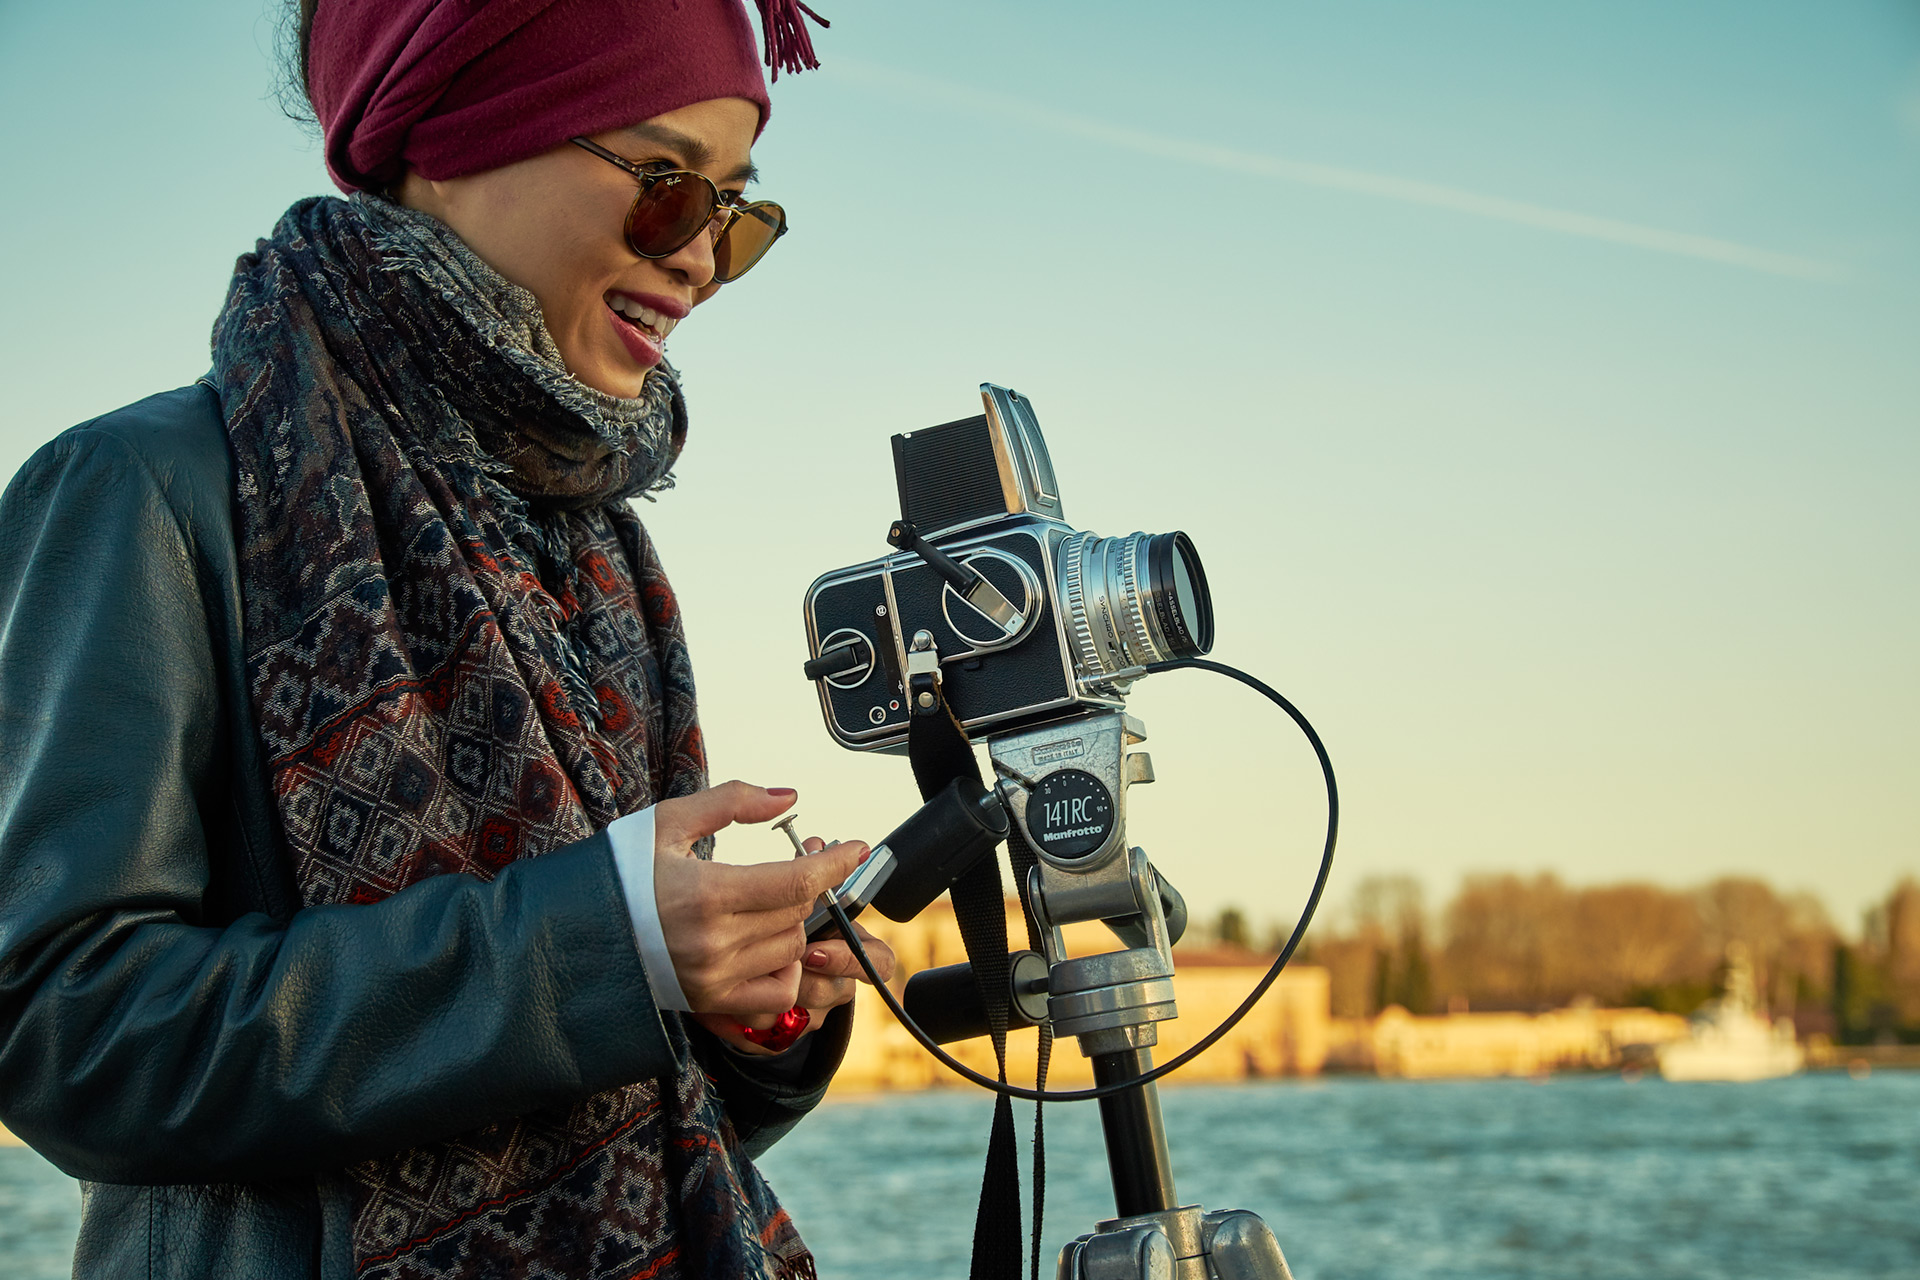 The Decisive Hasselblad - Venice Carnival Venice Travel Show the Original Photography Workshop Photography Photo Tour Capture One - the decisive hasselblad f